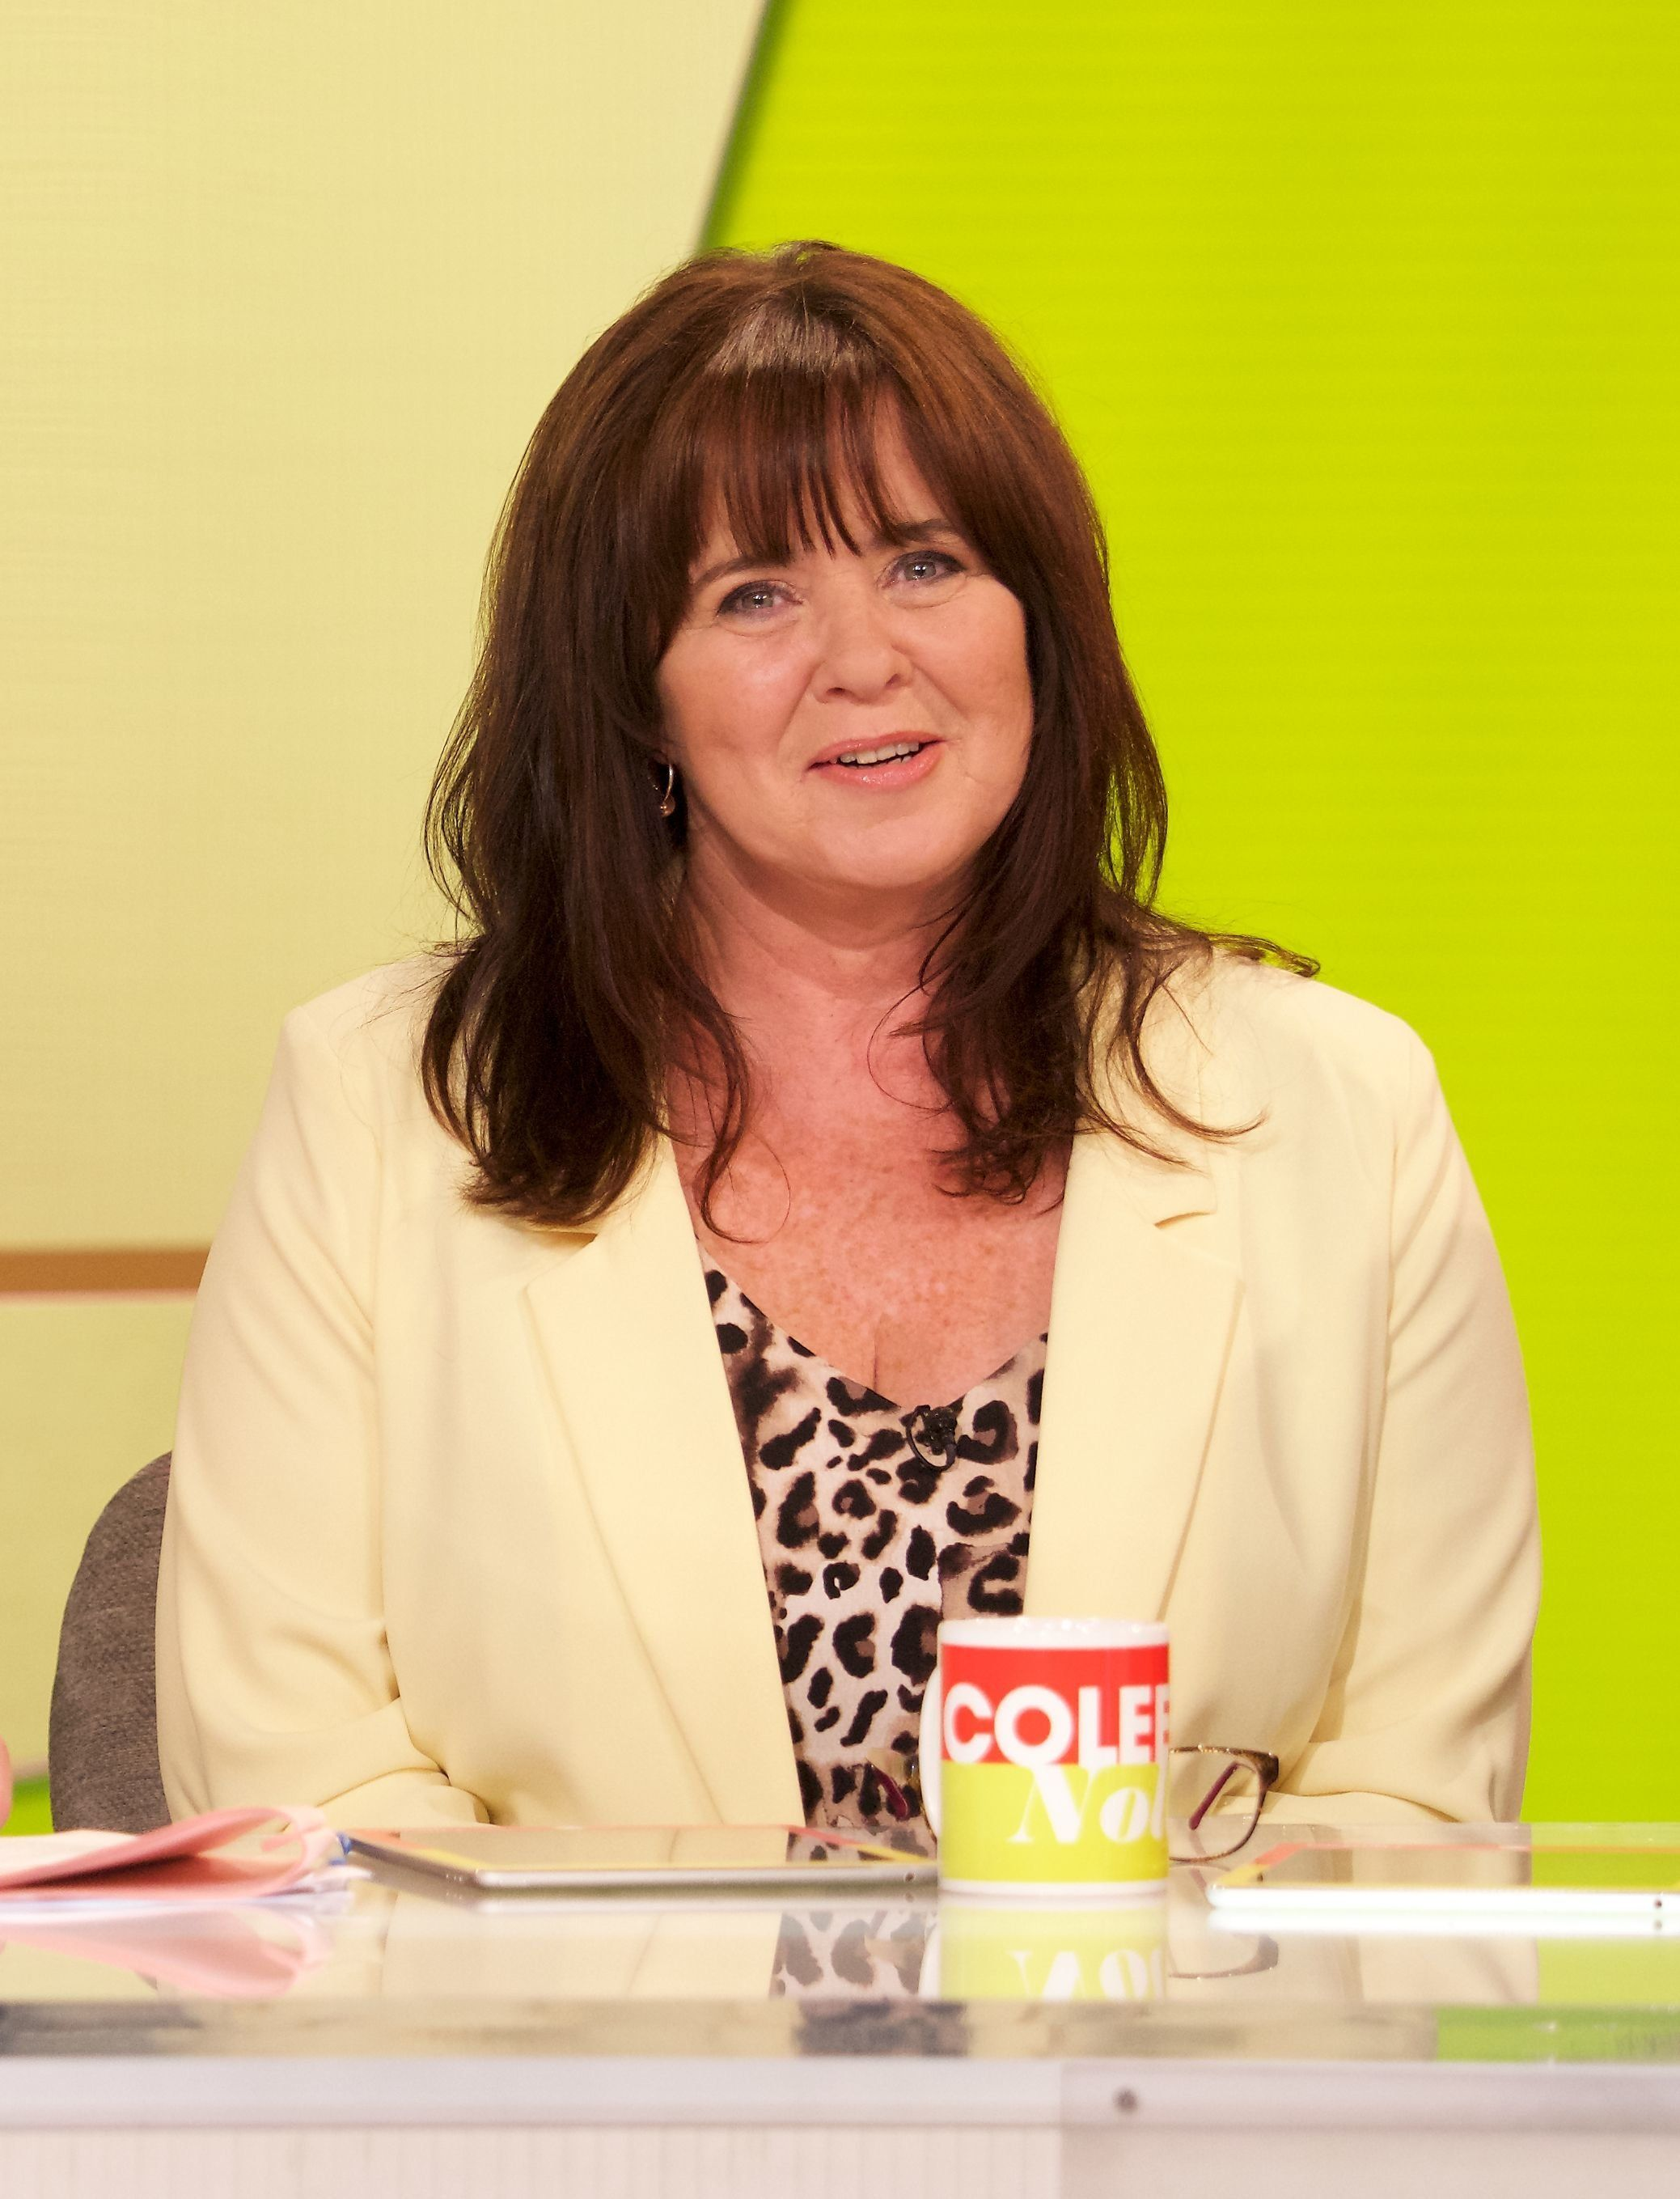 Coleen Nolan Addresses Kim Woodburn 'Loose Women' Controversy, Insisting She's No Bully